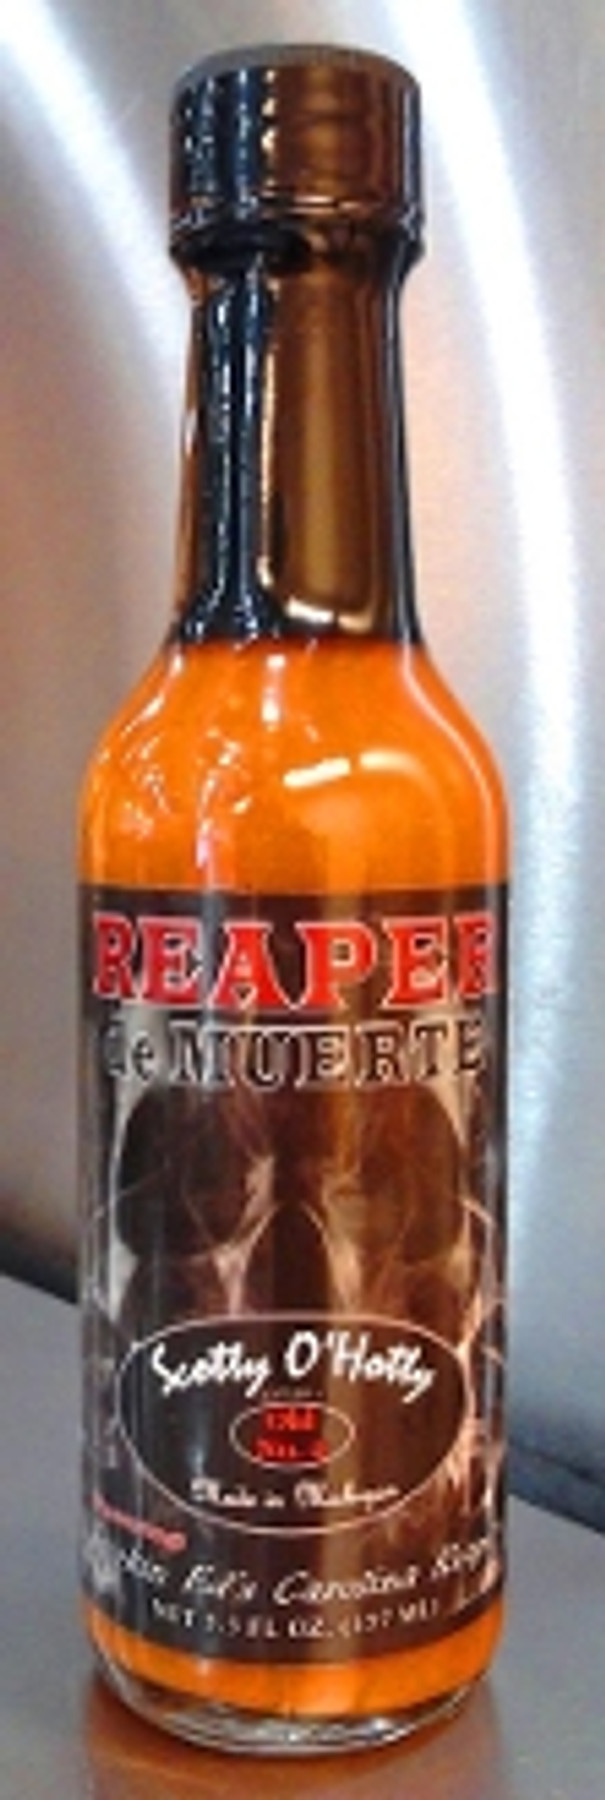 Reaper de Muerte available at Pepper Explosion